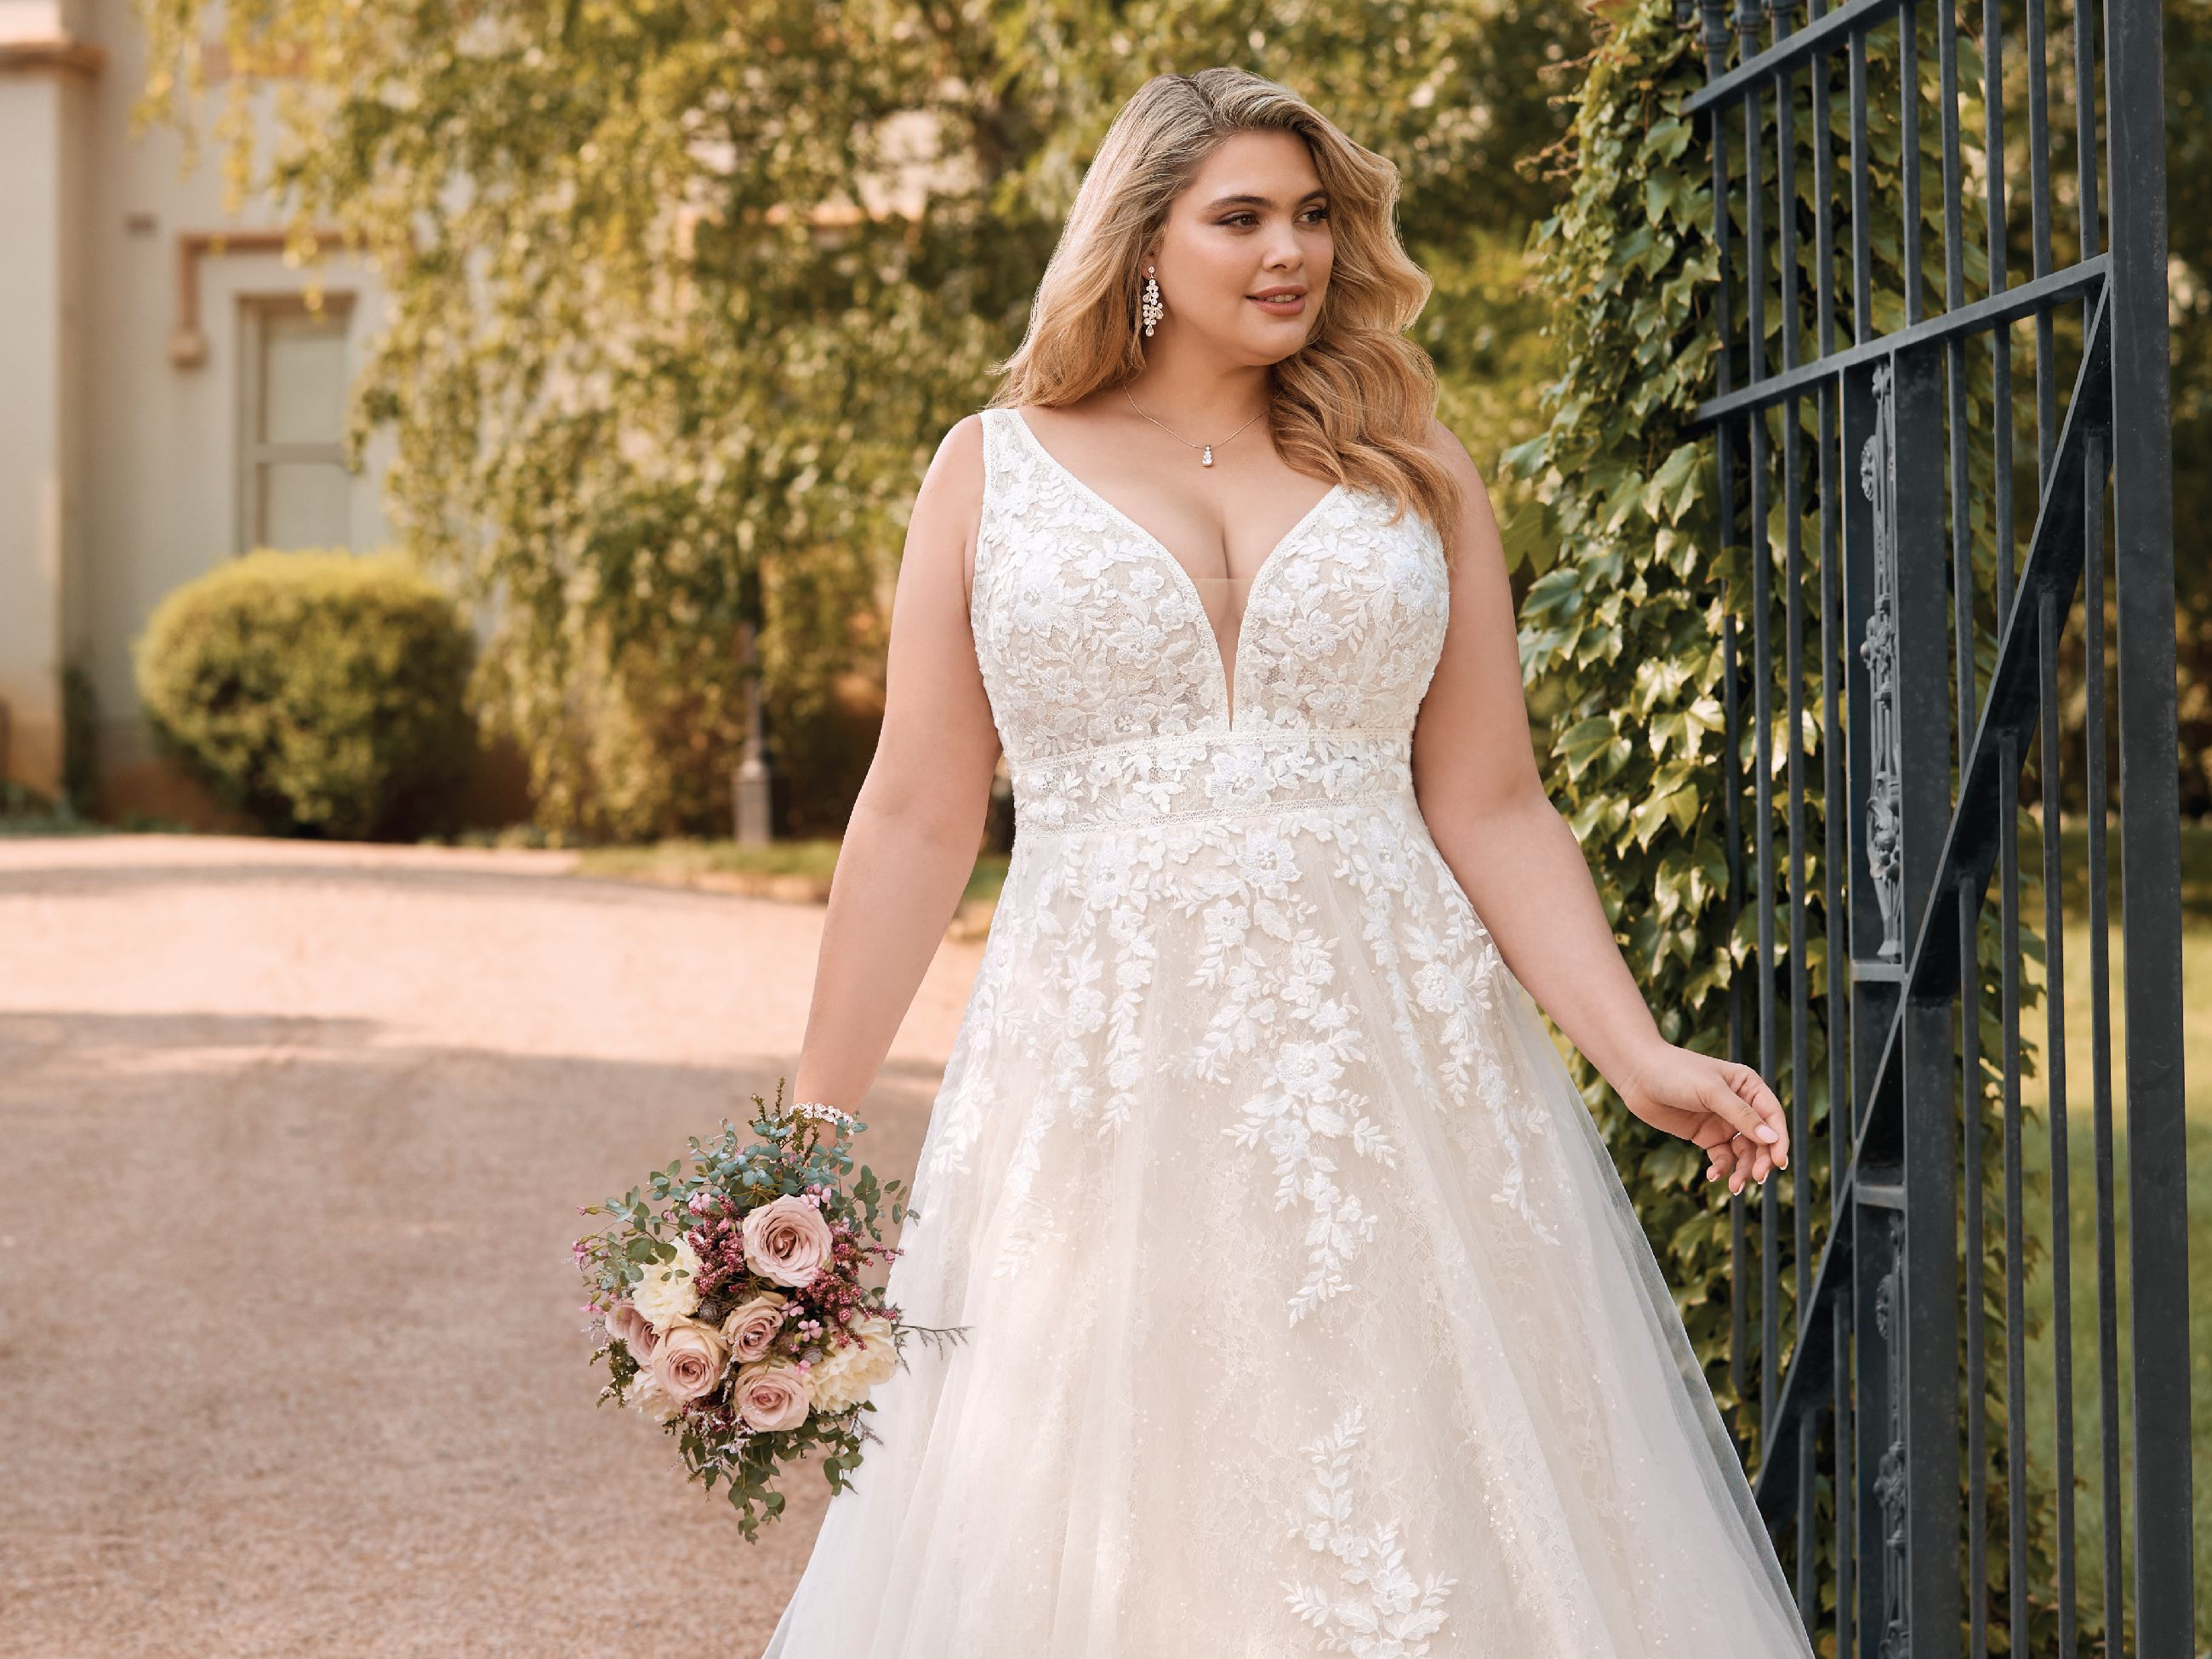 Plus size model in white Sophia Tolli dress